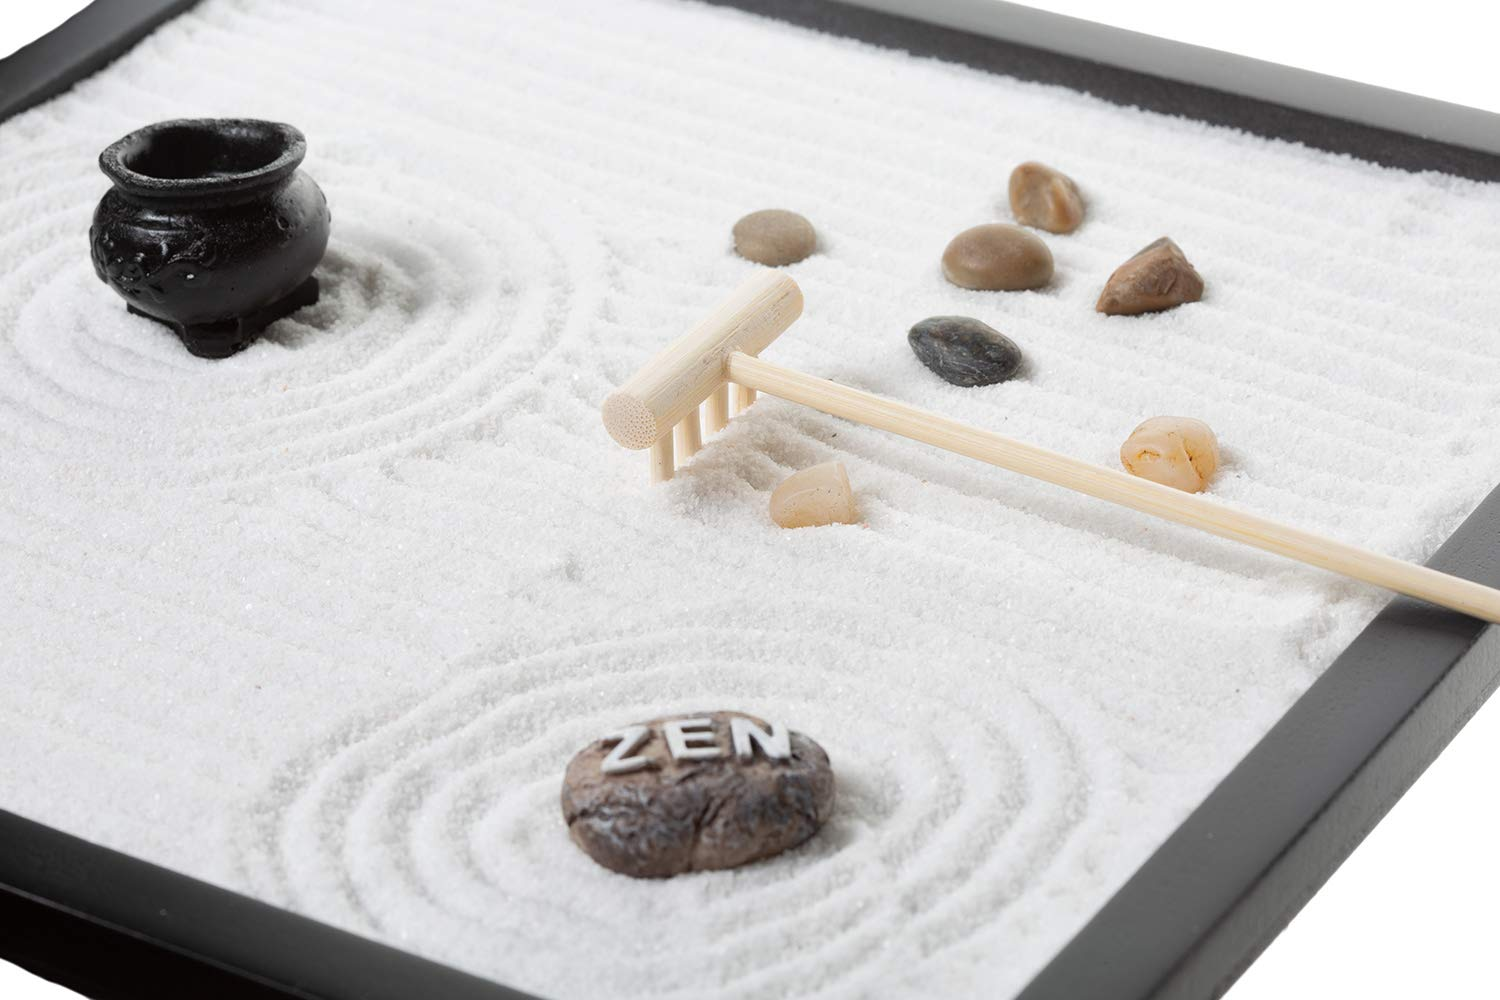 Tabletop Sand Zen Garden with Rocks and rake for Your Desk from Tatum & Shea by Tatum & Shea (Image #3)